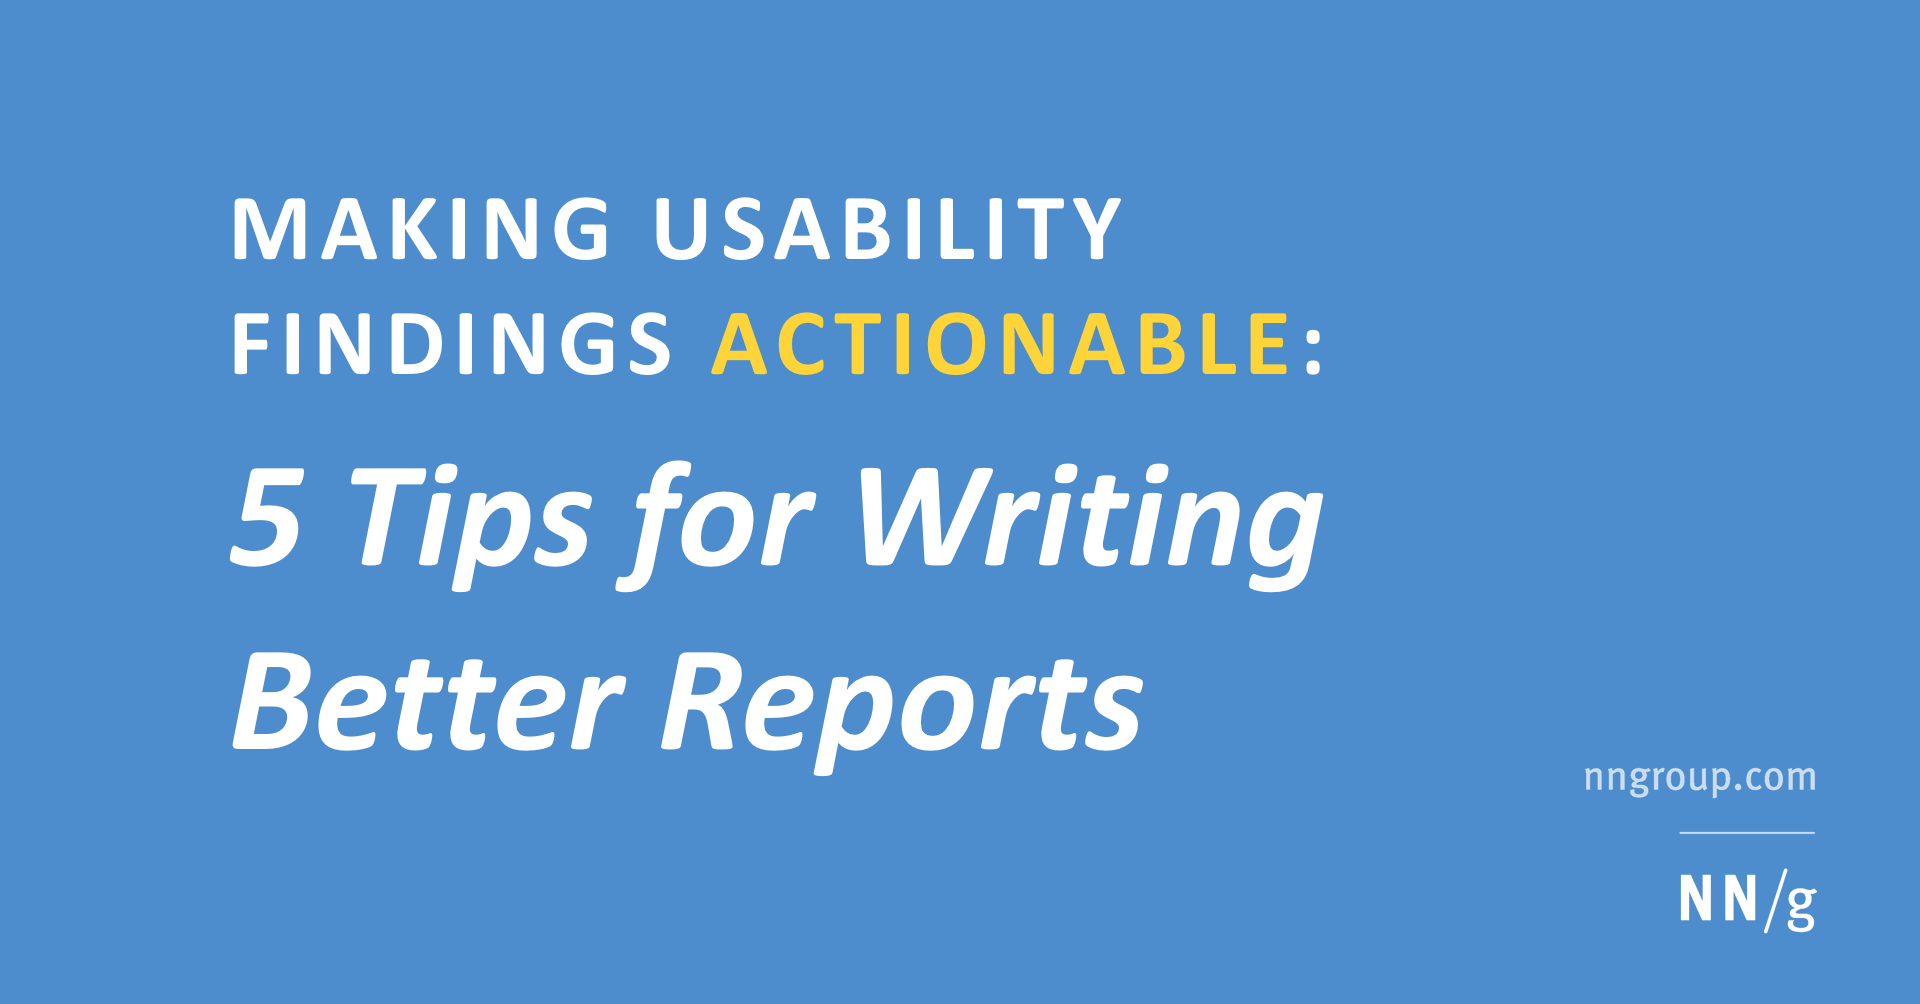 Making Usability Findings Actionable